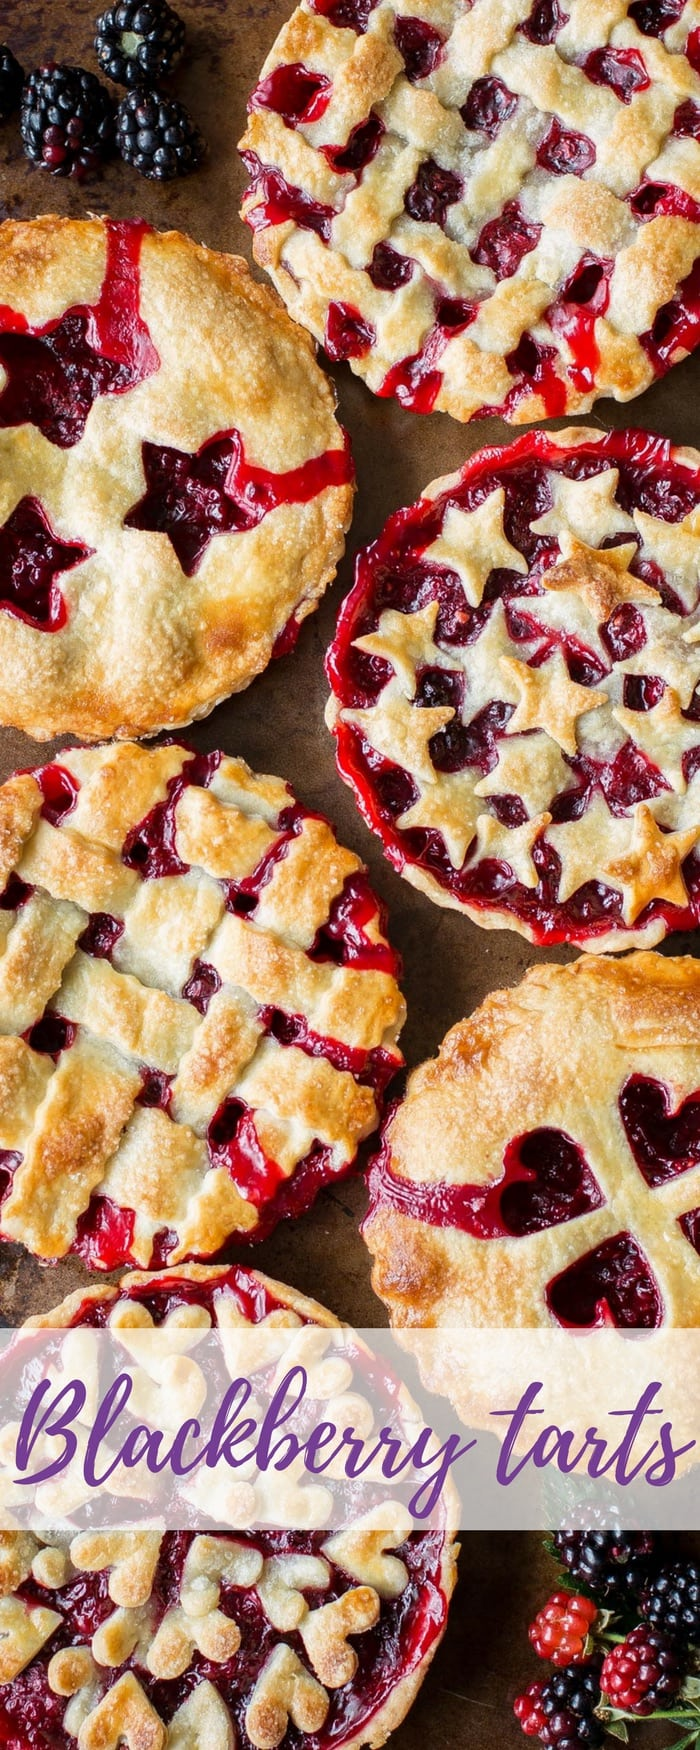 Blackberry Tarts ~ Garden to Table - juicy, ripe blackberries nestled in a buttery, flaky crust for an iconic, all American summer dessert. www.savingdessert.com #savingroomfordessert #blackberry #tarts #pie #blackberrytart #summerdessert #summerpie #easytarts